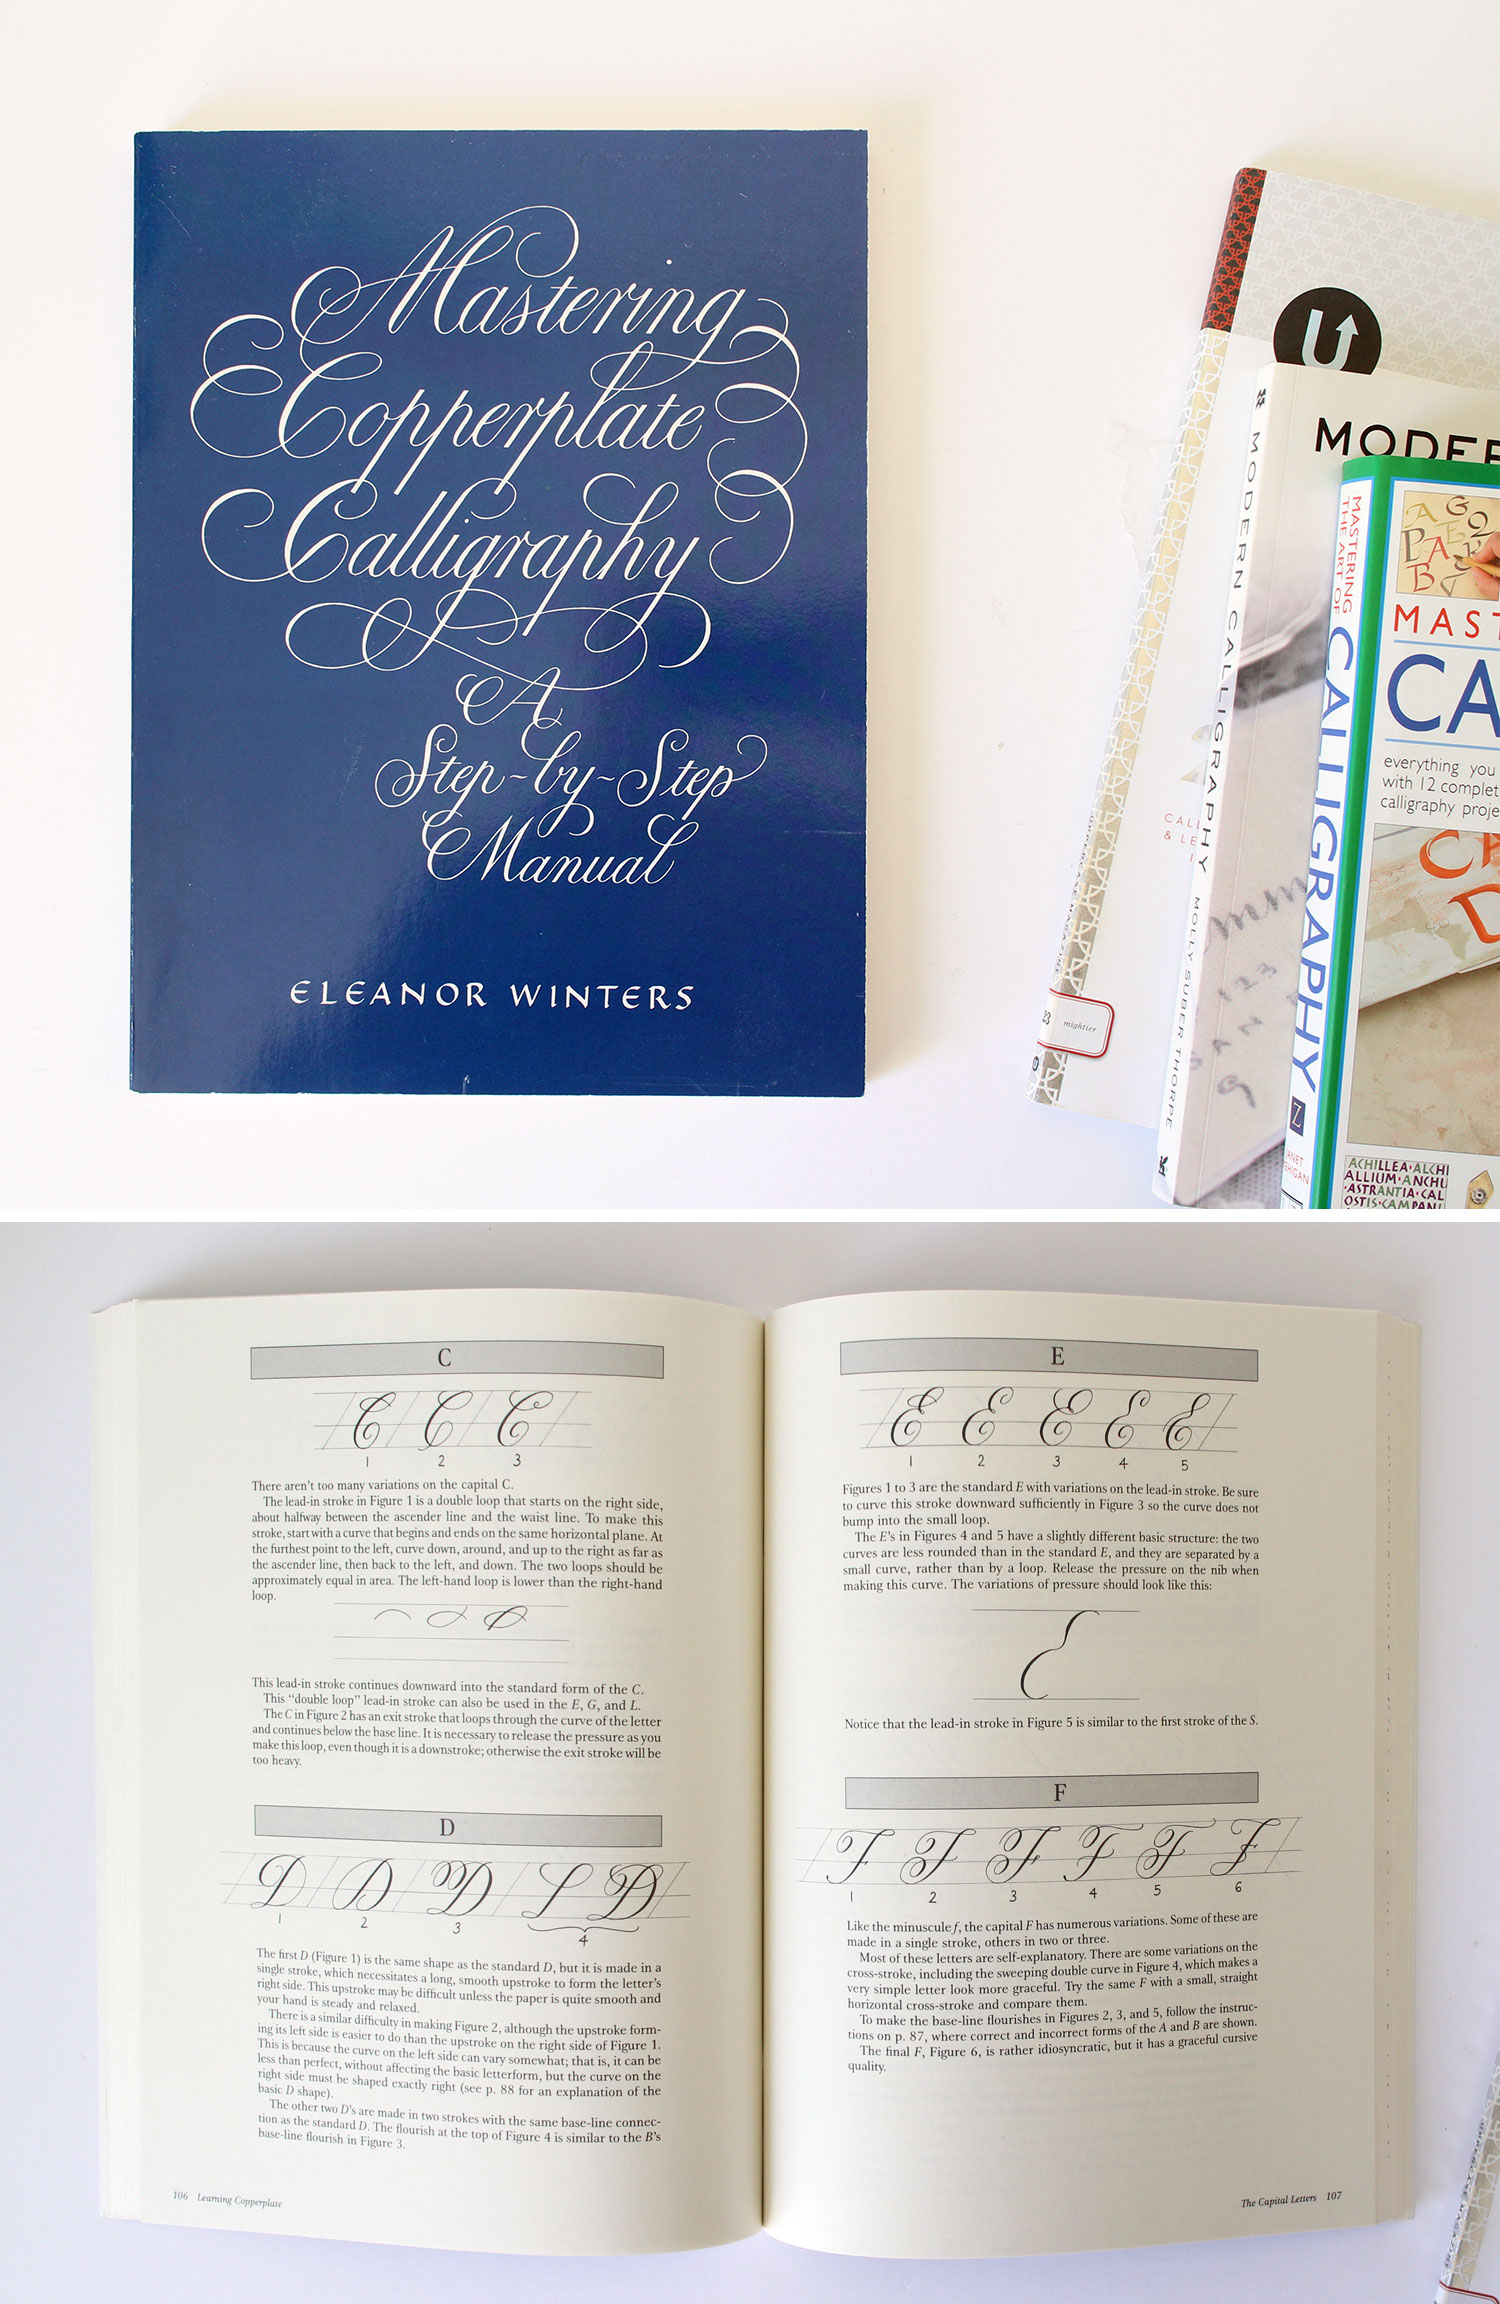 Purchase; Mastering Copperplate Calligraphy, A Step by Step Manual